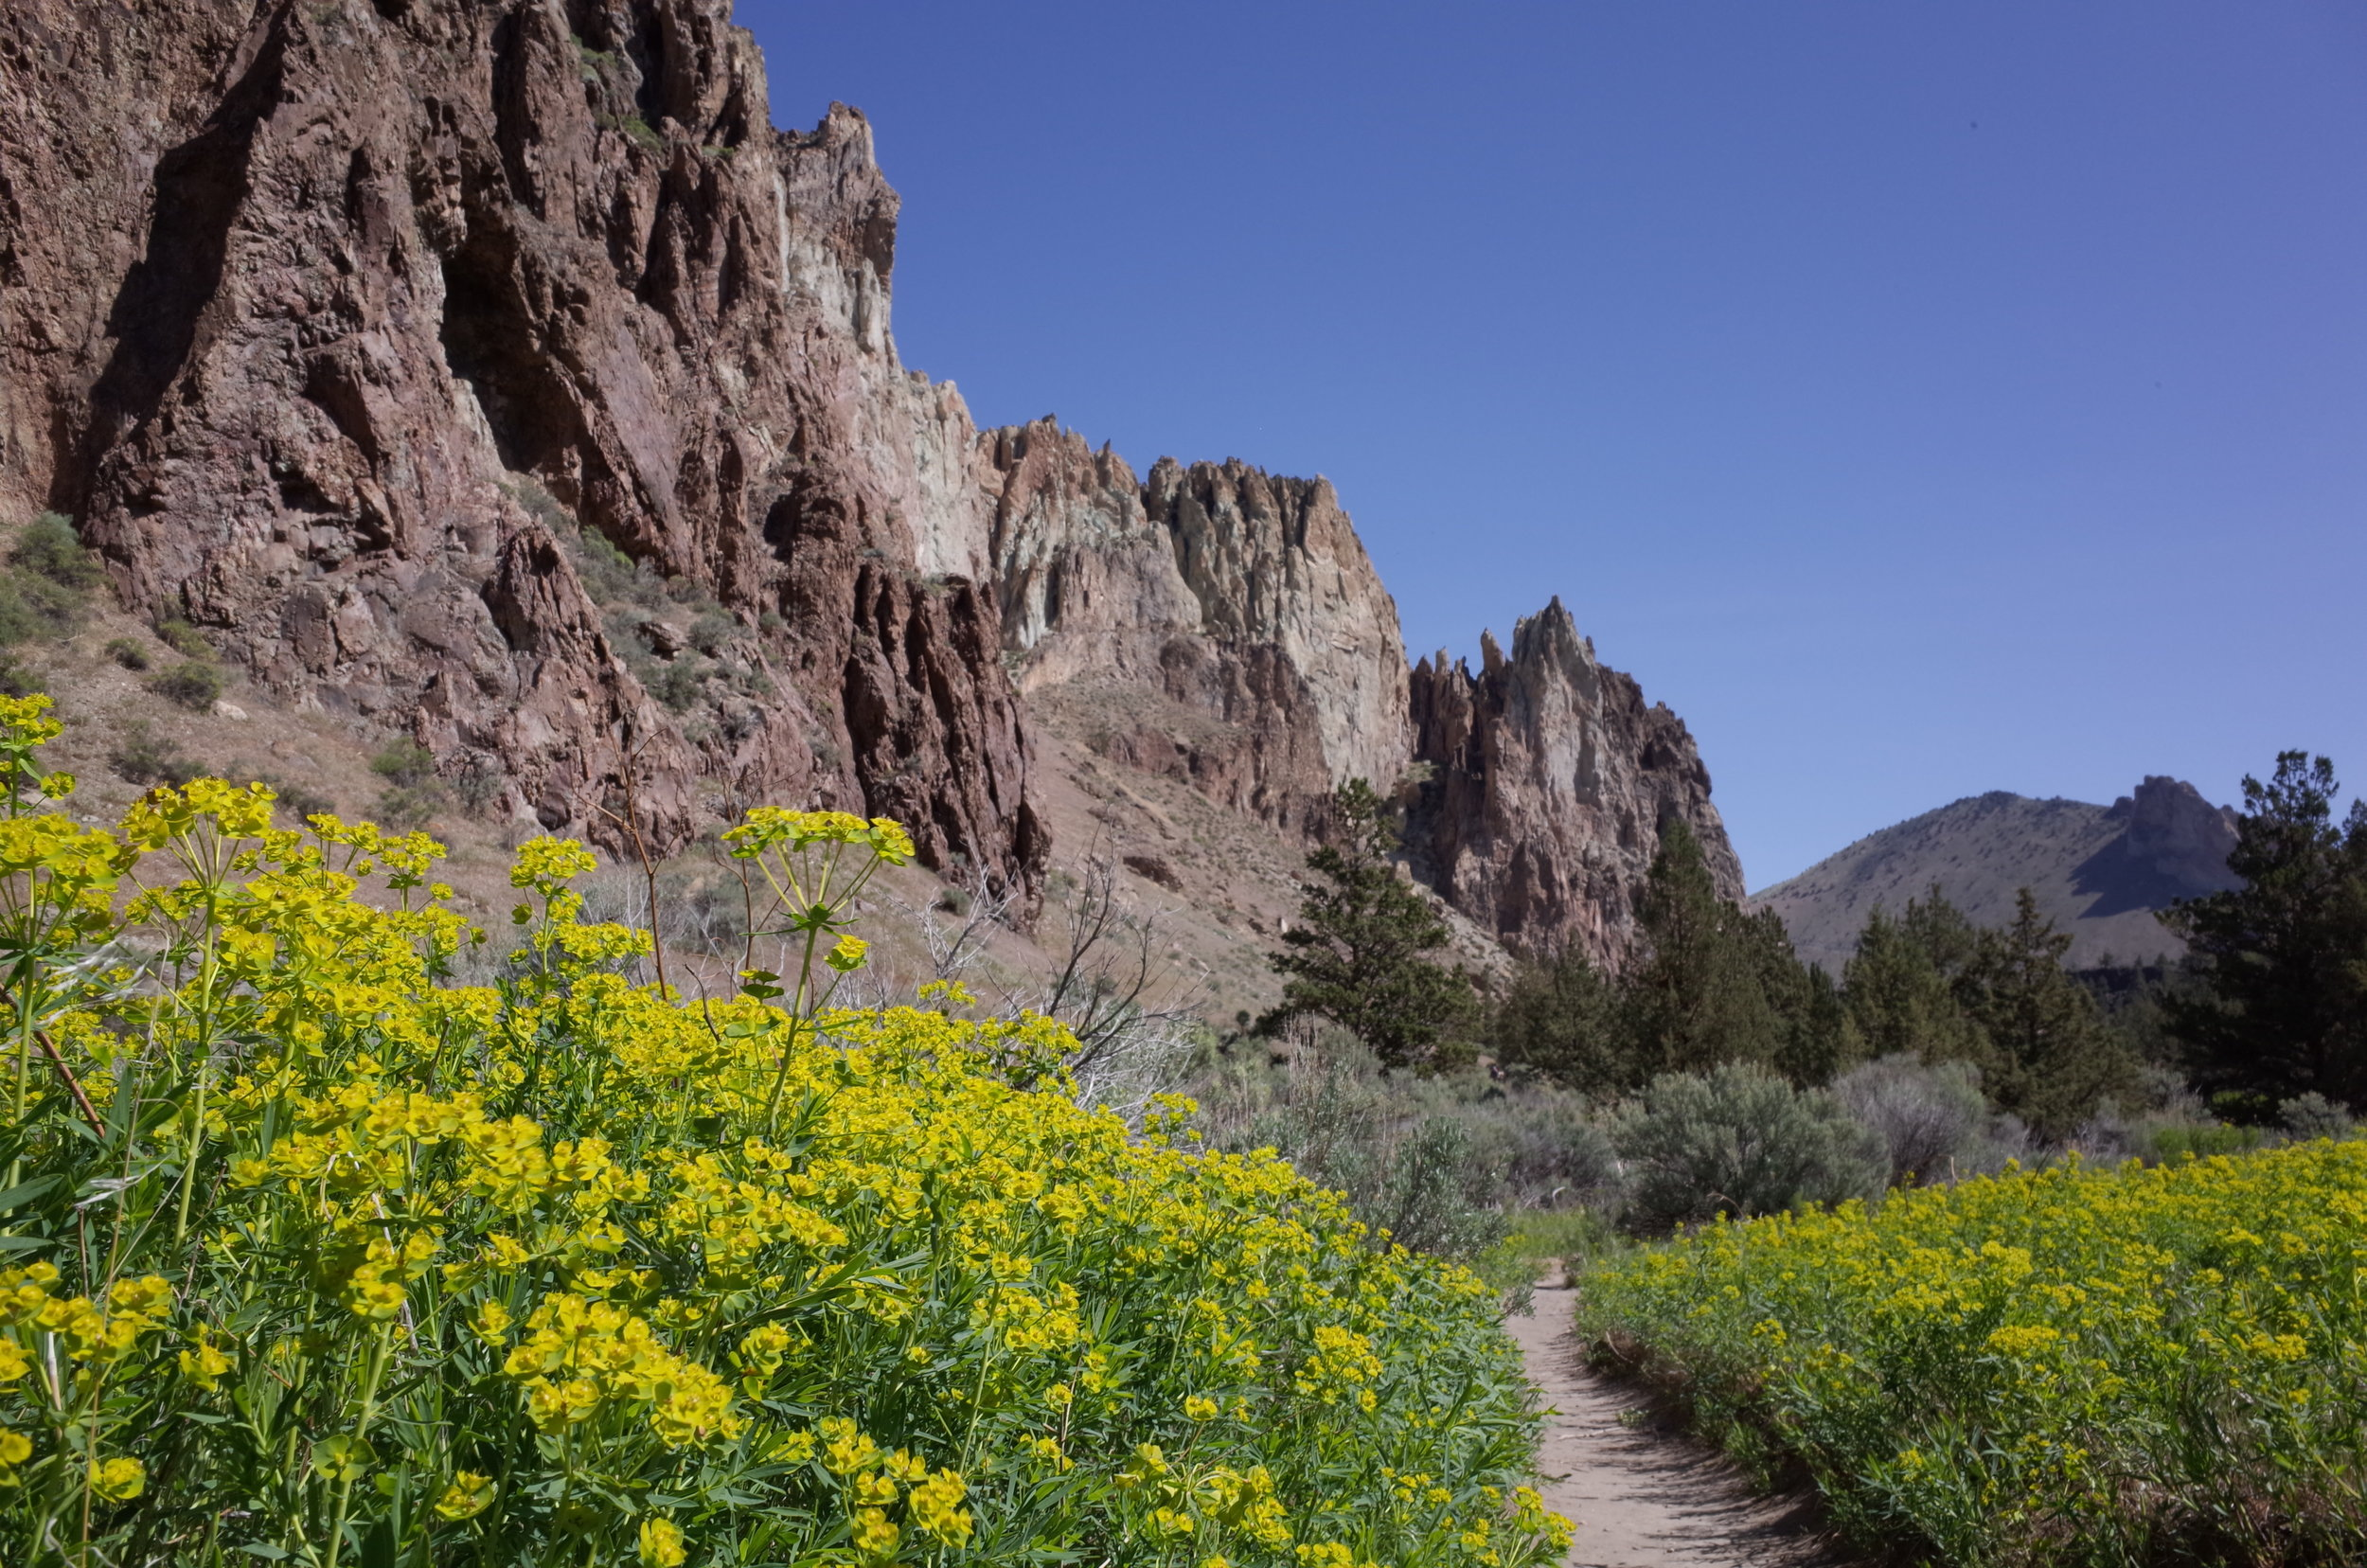 When to visit Smith Rock